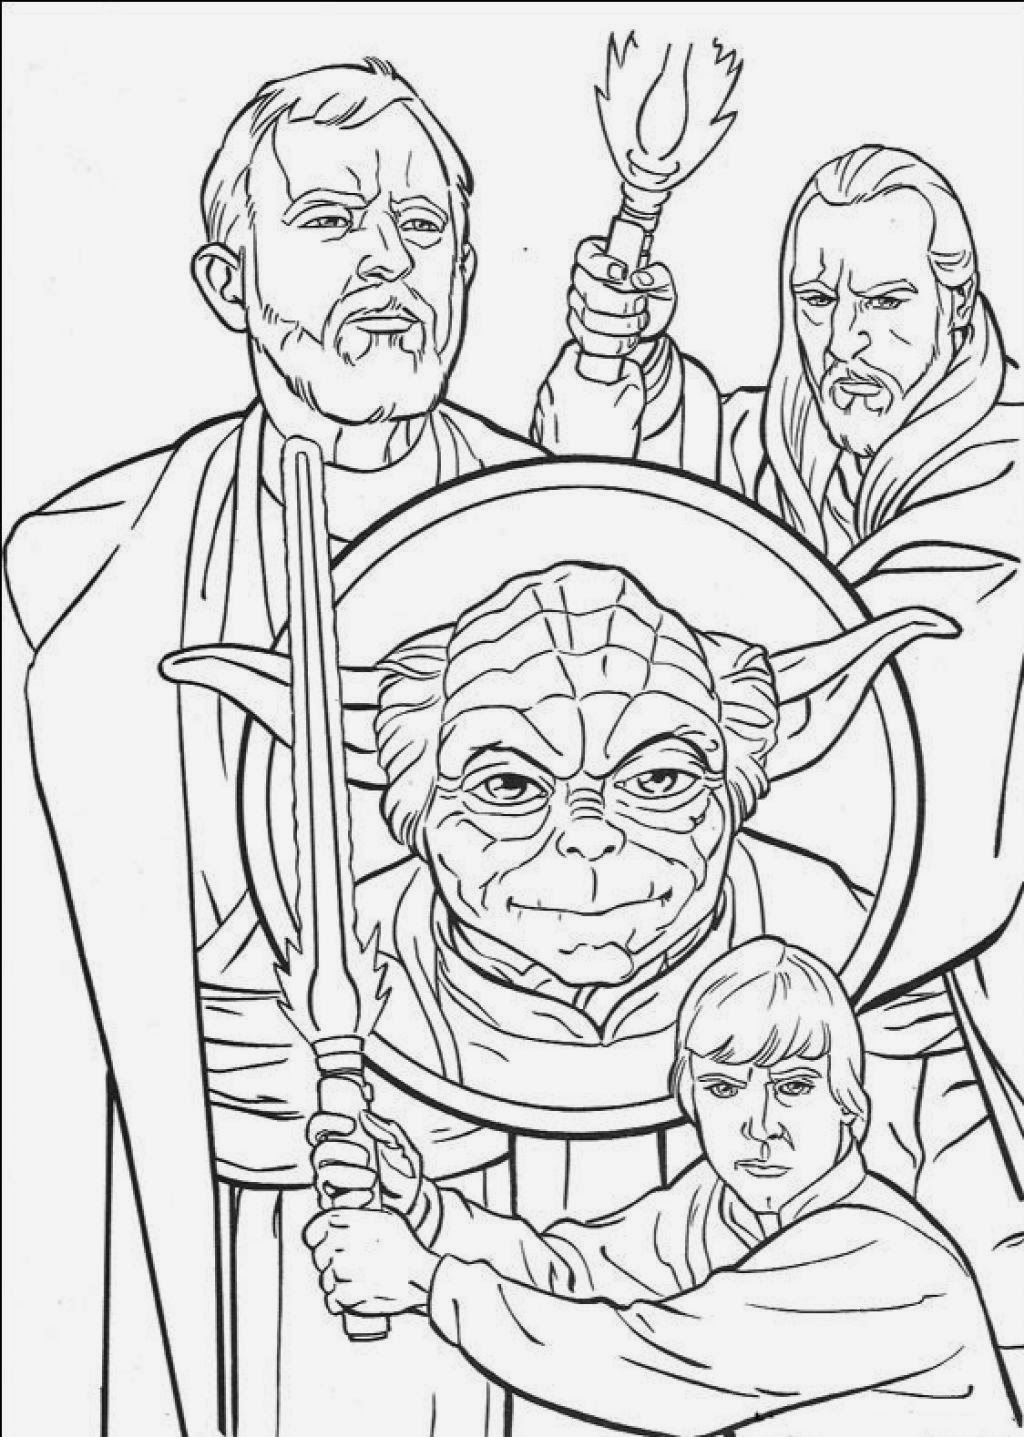 star wars coloring pictures star wars to download star wars kids coloring pages pictures coloring star wars